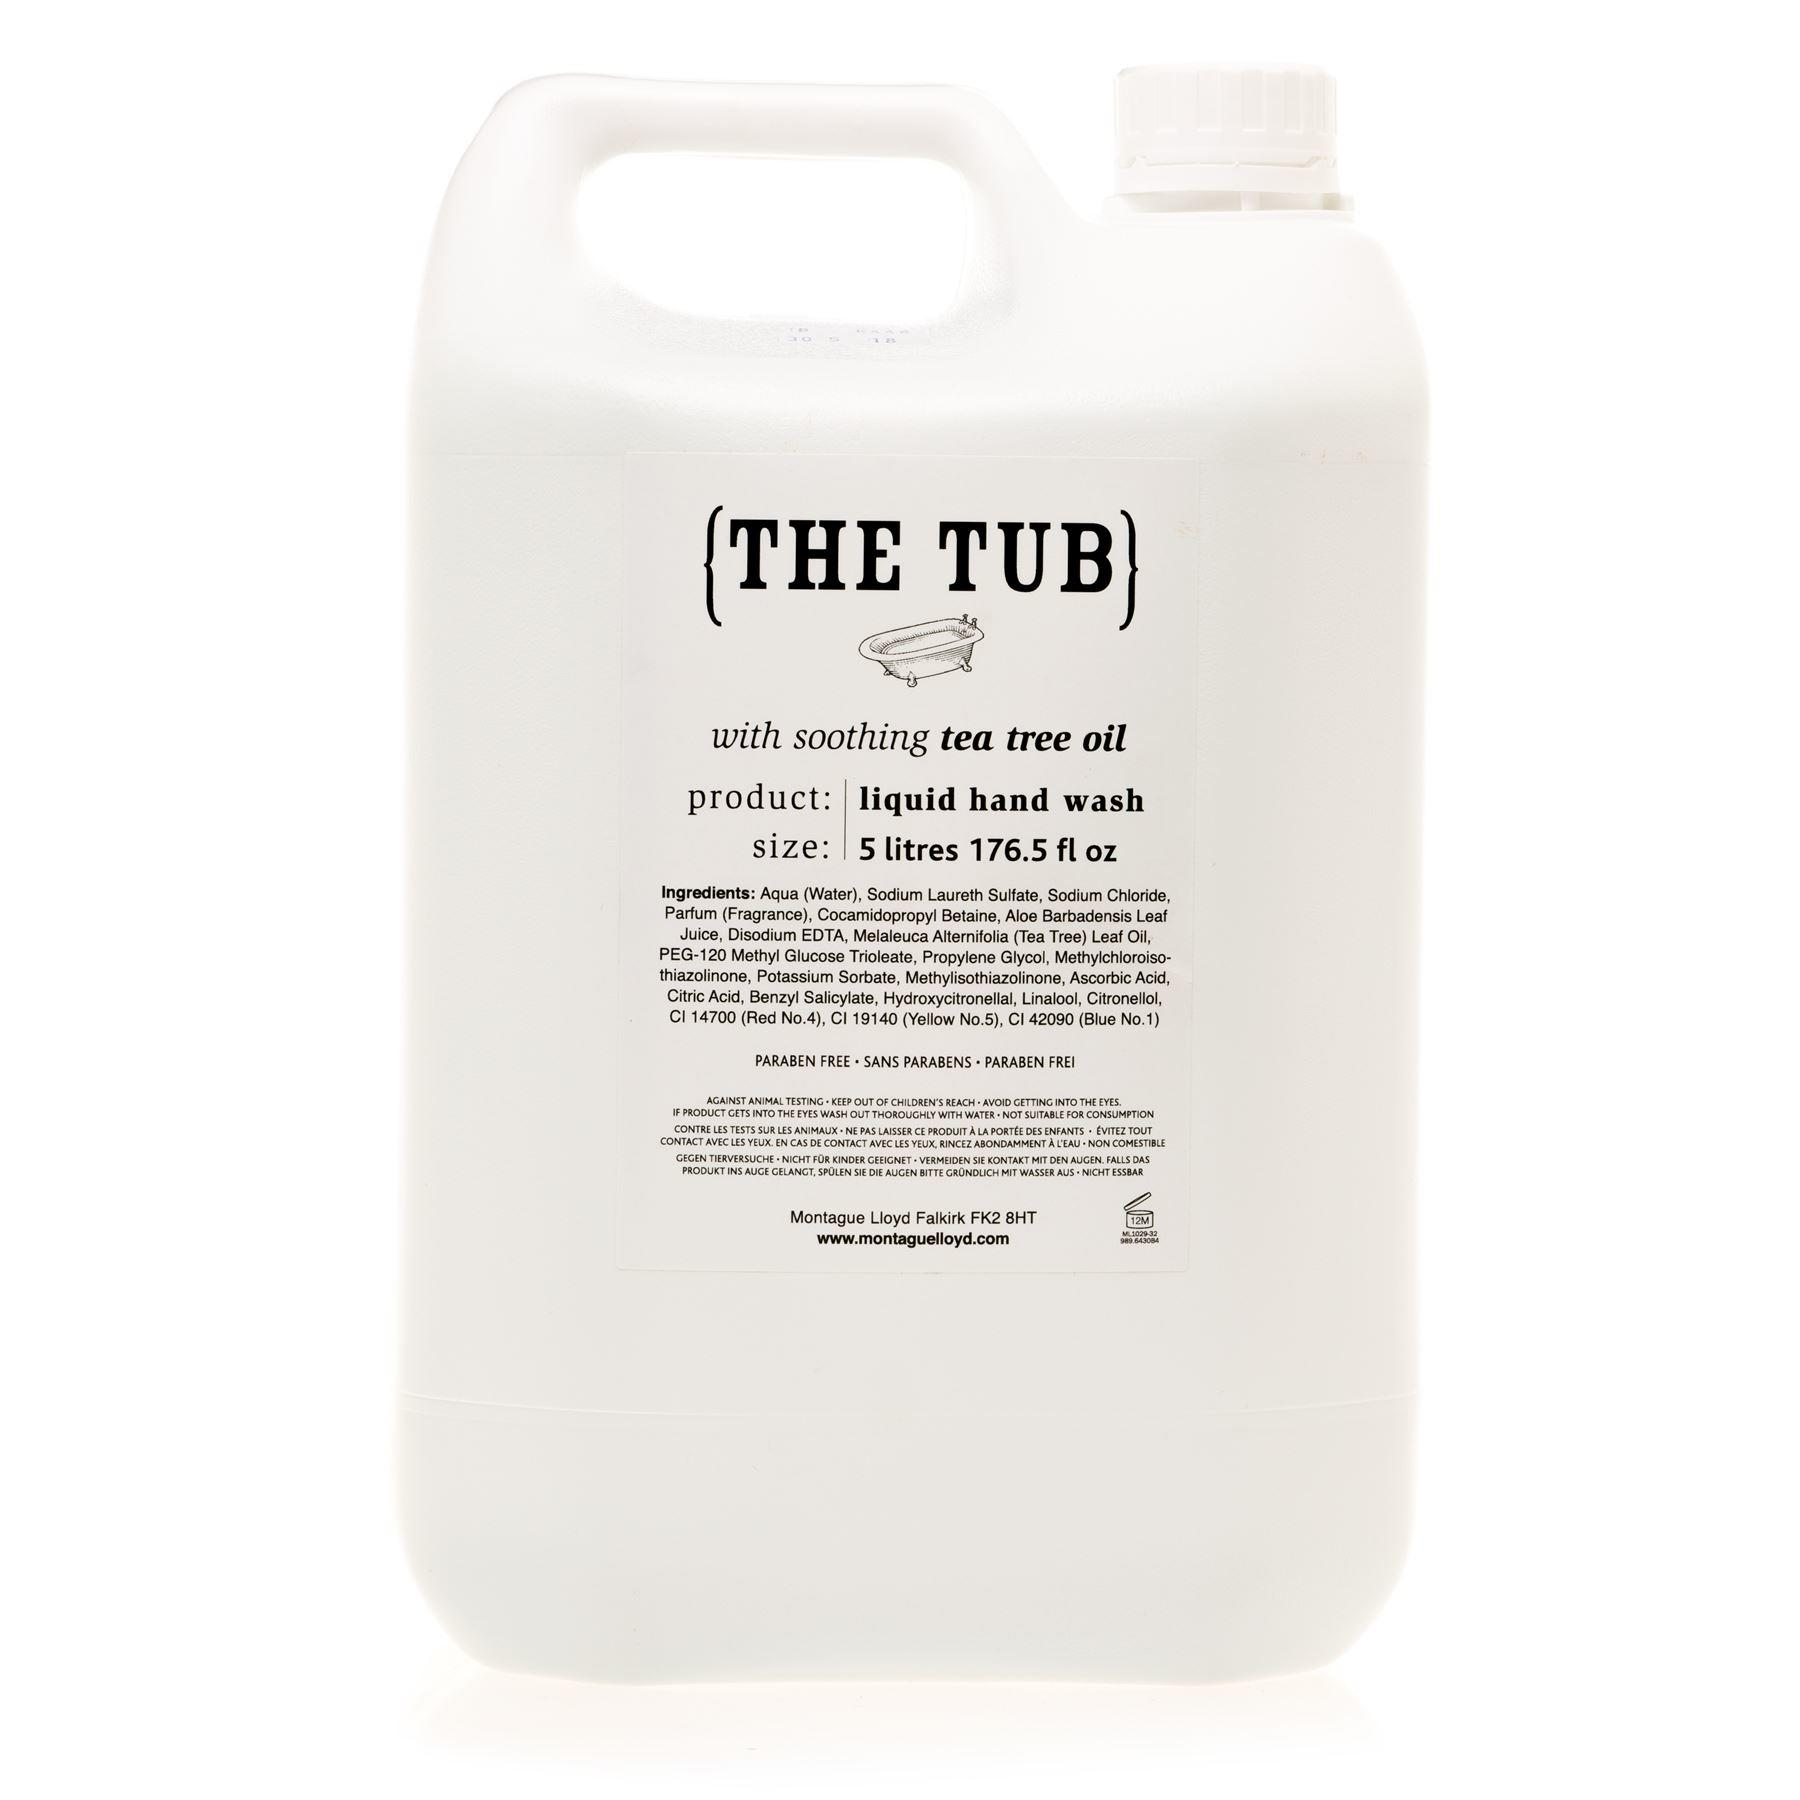 Montague Lloyd Commercial 'The Tub' Soothing Tea Tree Oil Hand Wash Refill